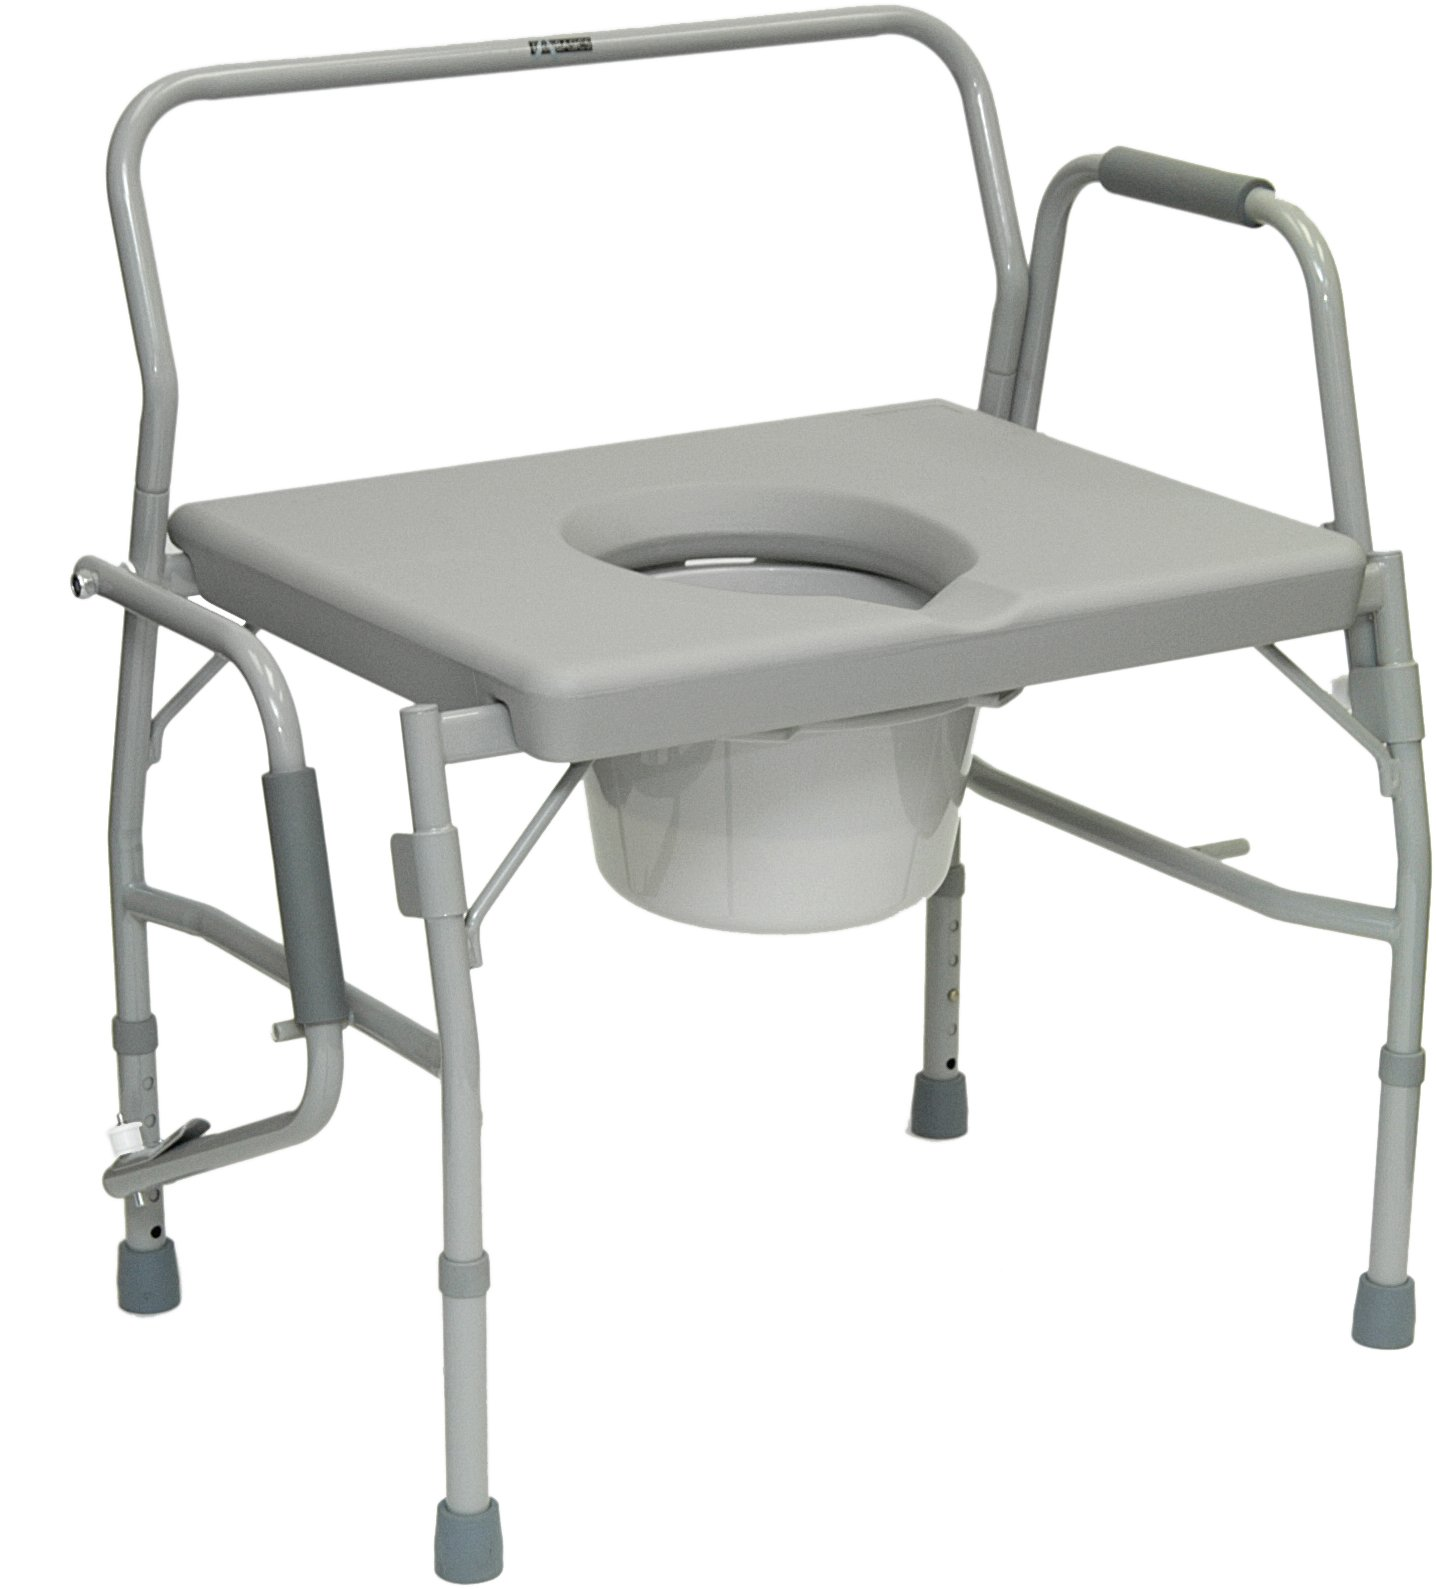 Roscoe Medical BSBDAC Bariatric Drop Arm Commode